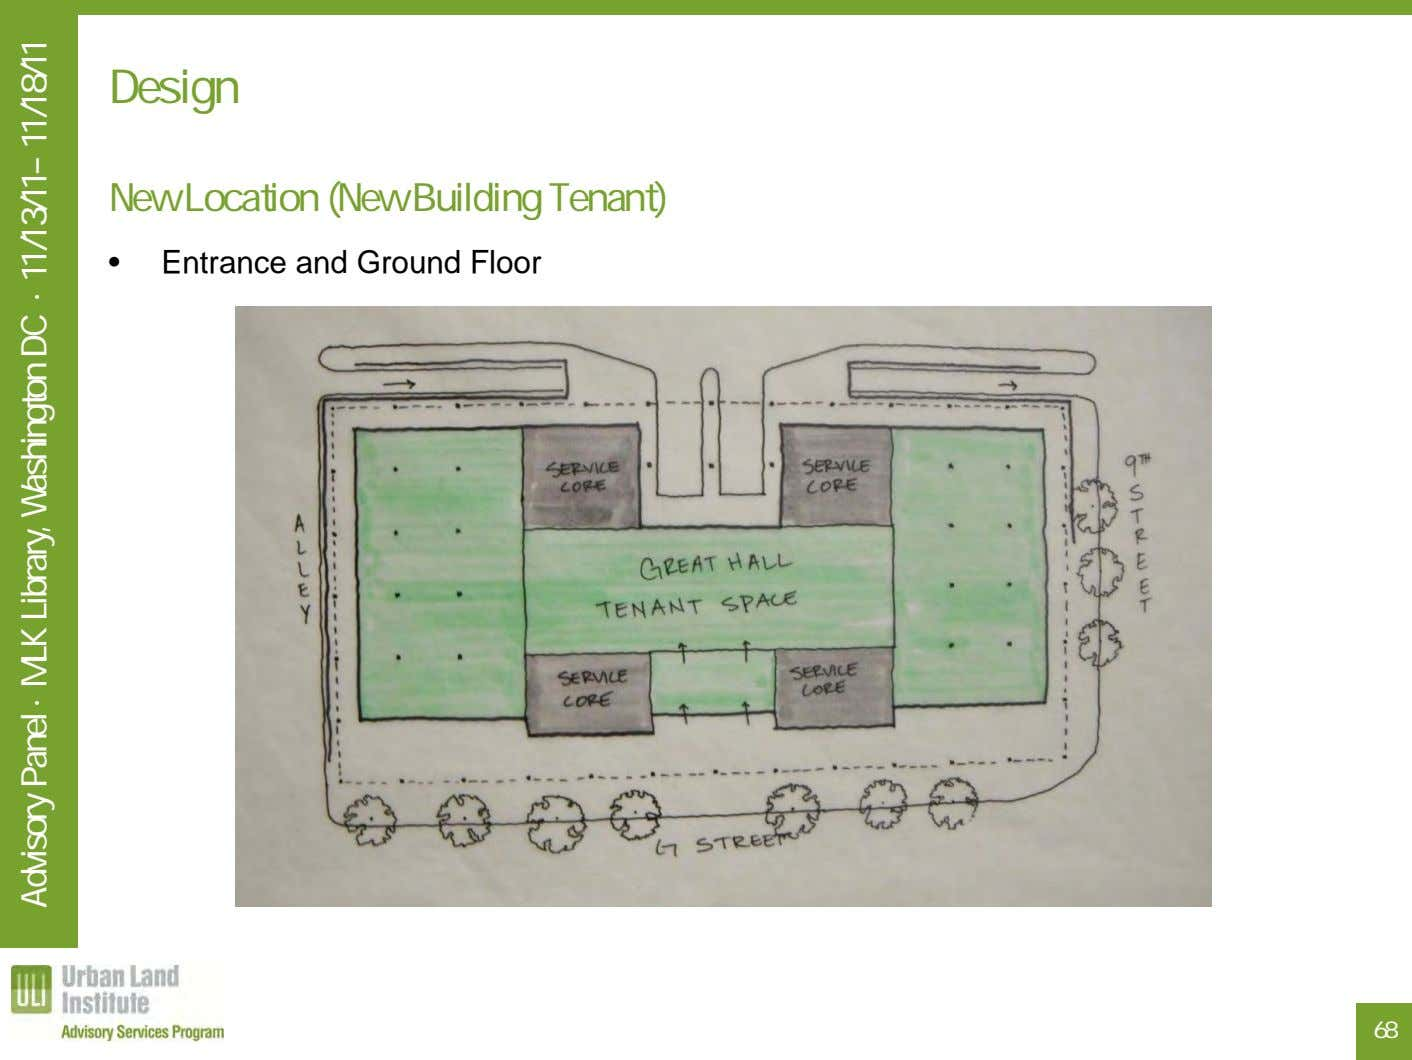 Design New Location (New Building Tenant) • Entrance and Ground Floor 68 Advisory Panel ·